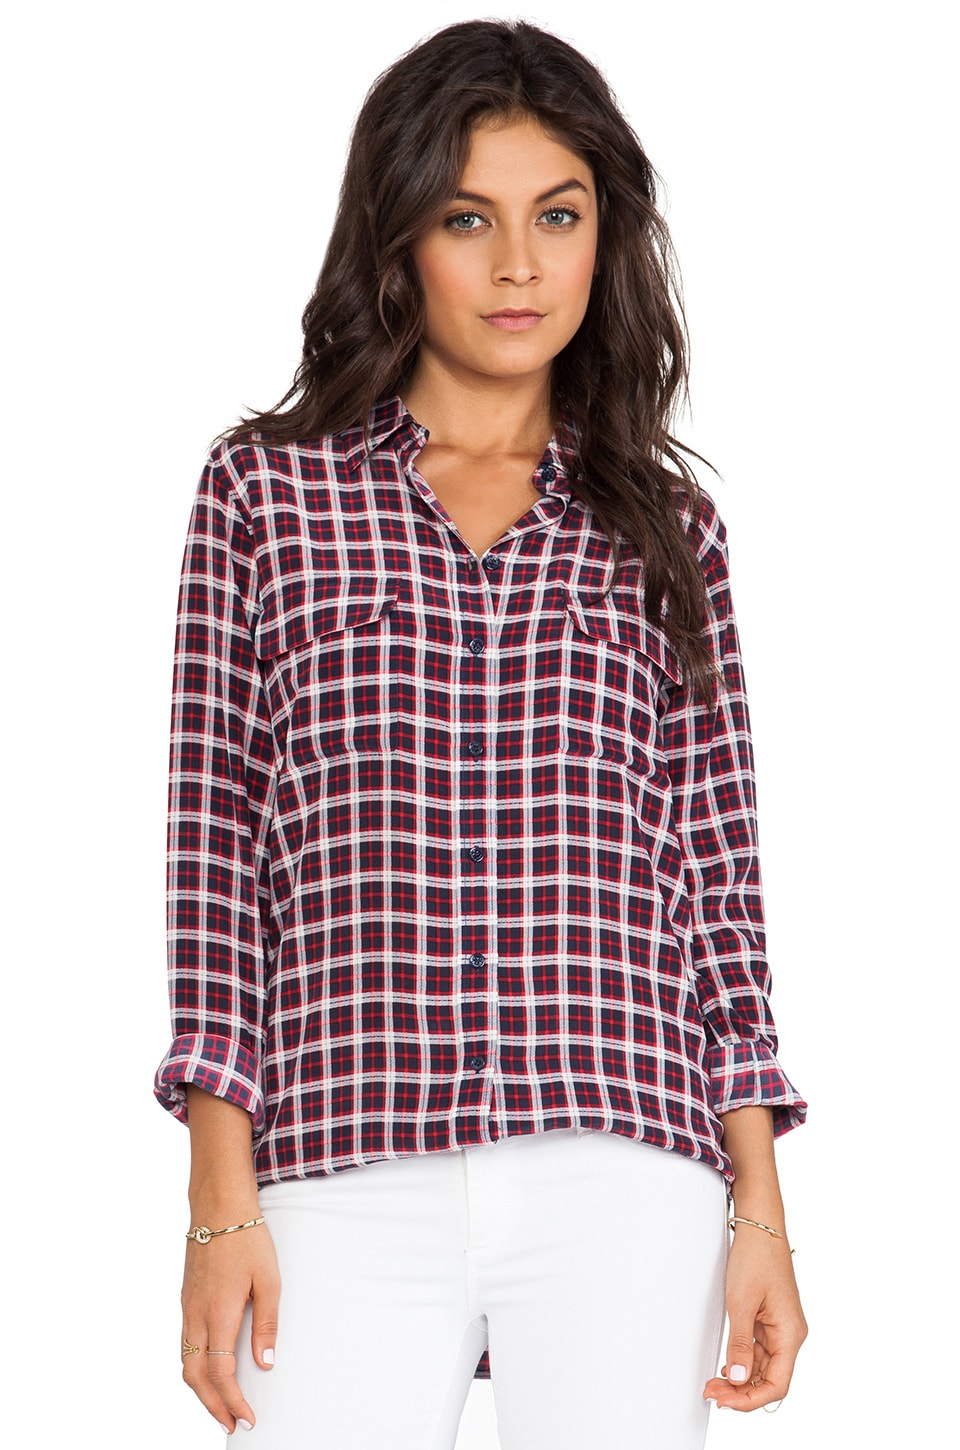 Equipment Slim Signature Pragmatic Plaid Blouse in Stealth Multi